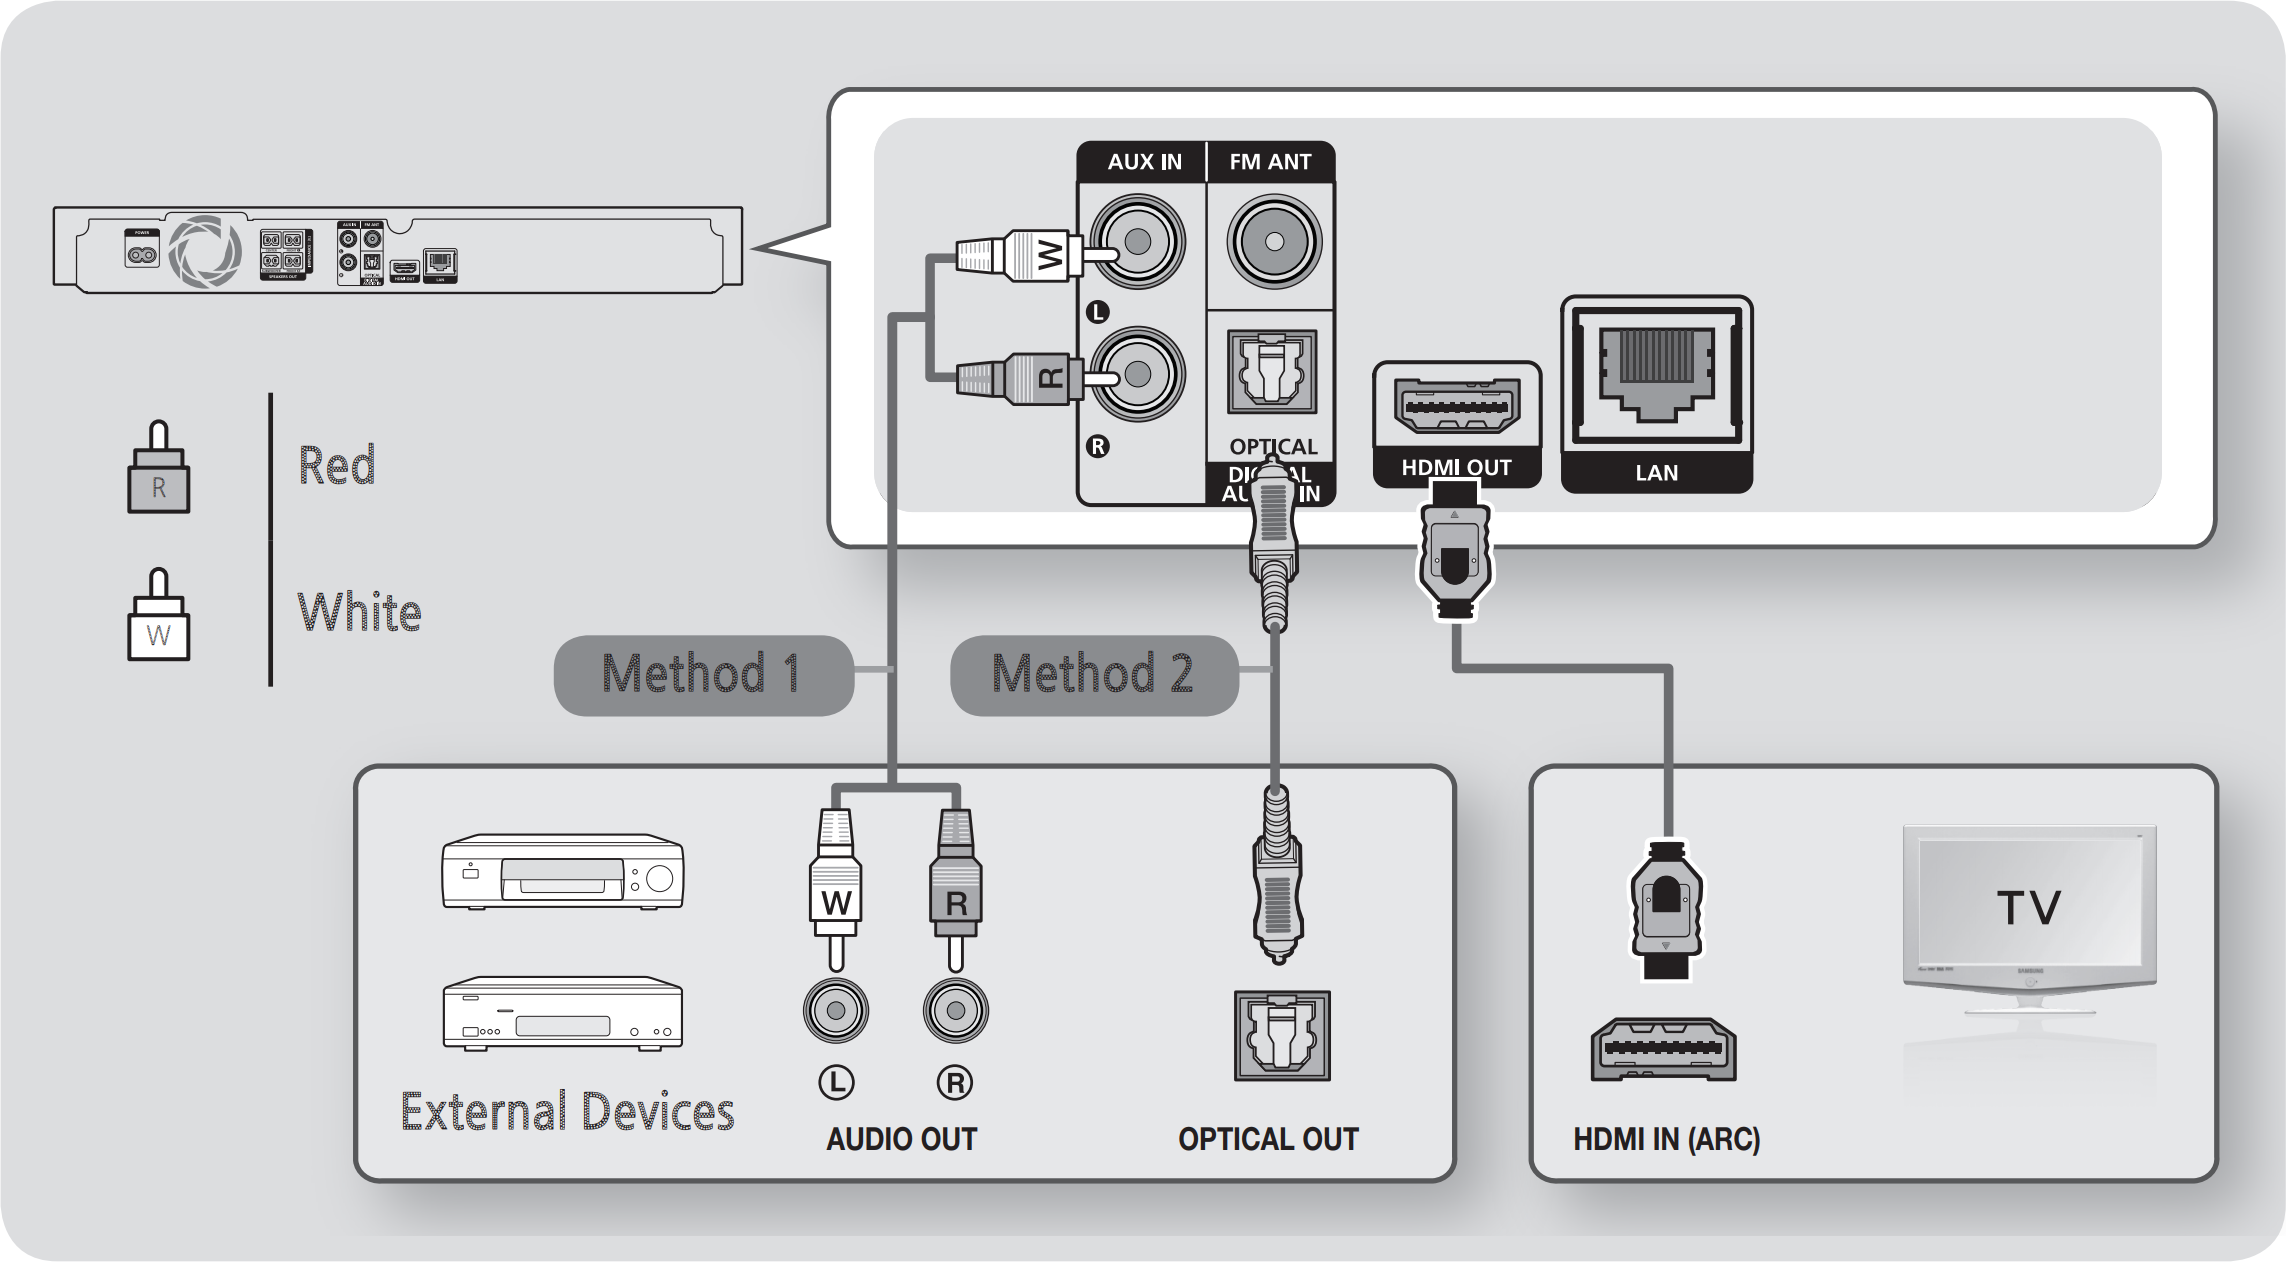 Diagram of connecting devices to the Blu-Ray player